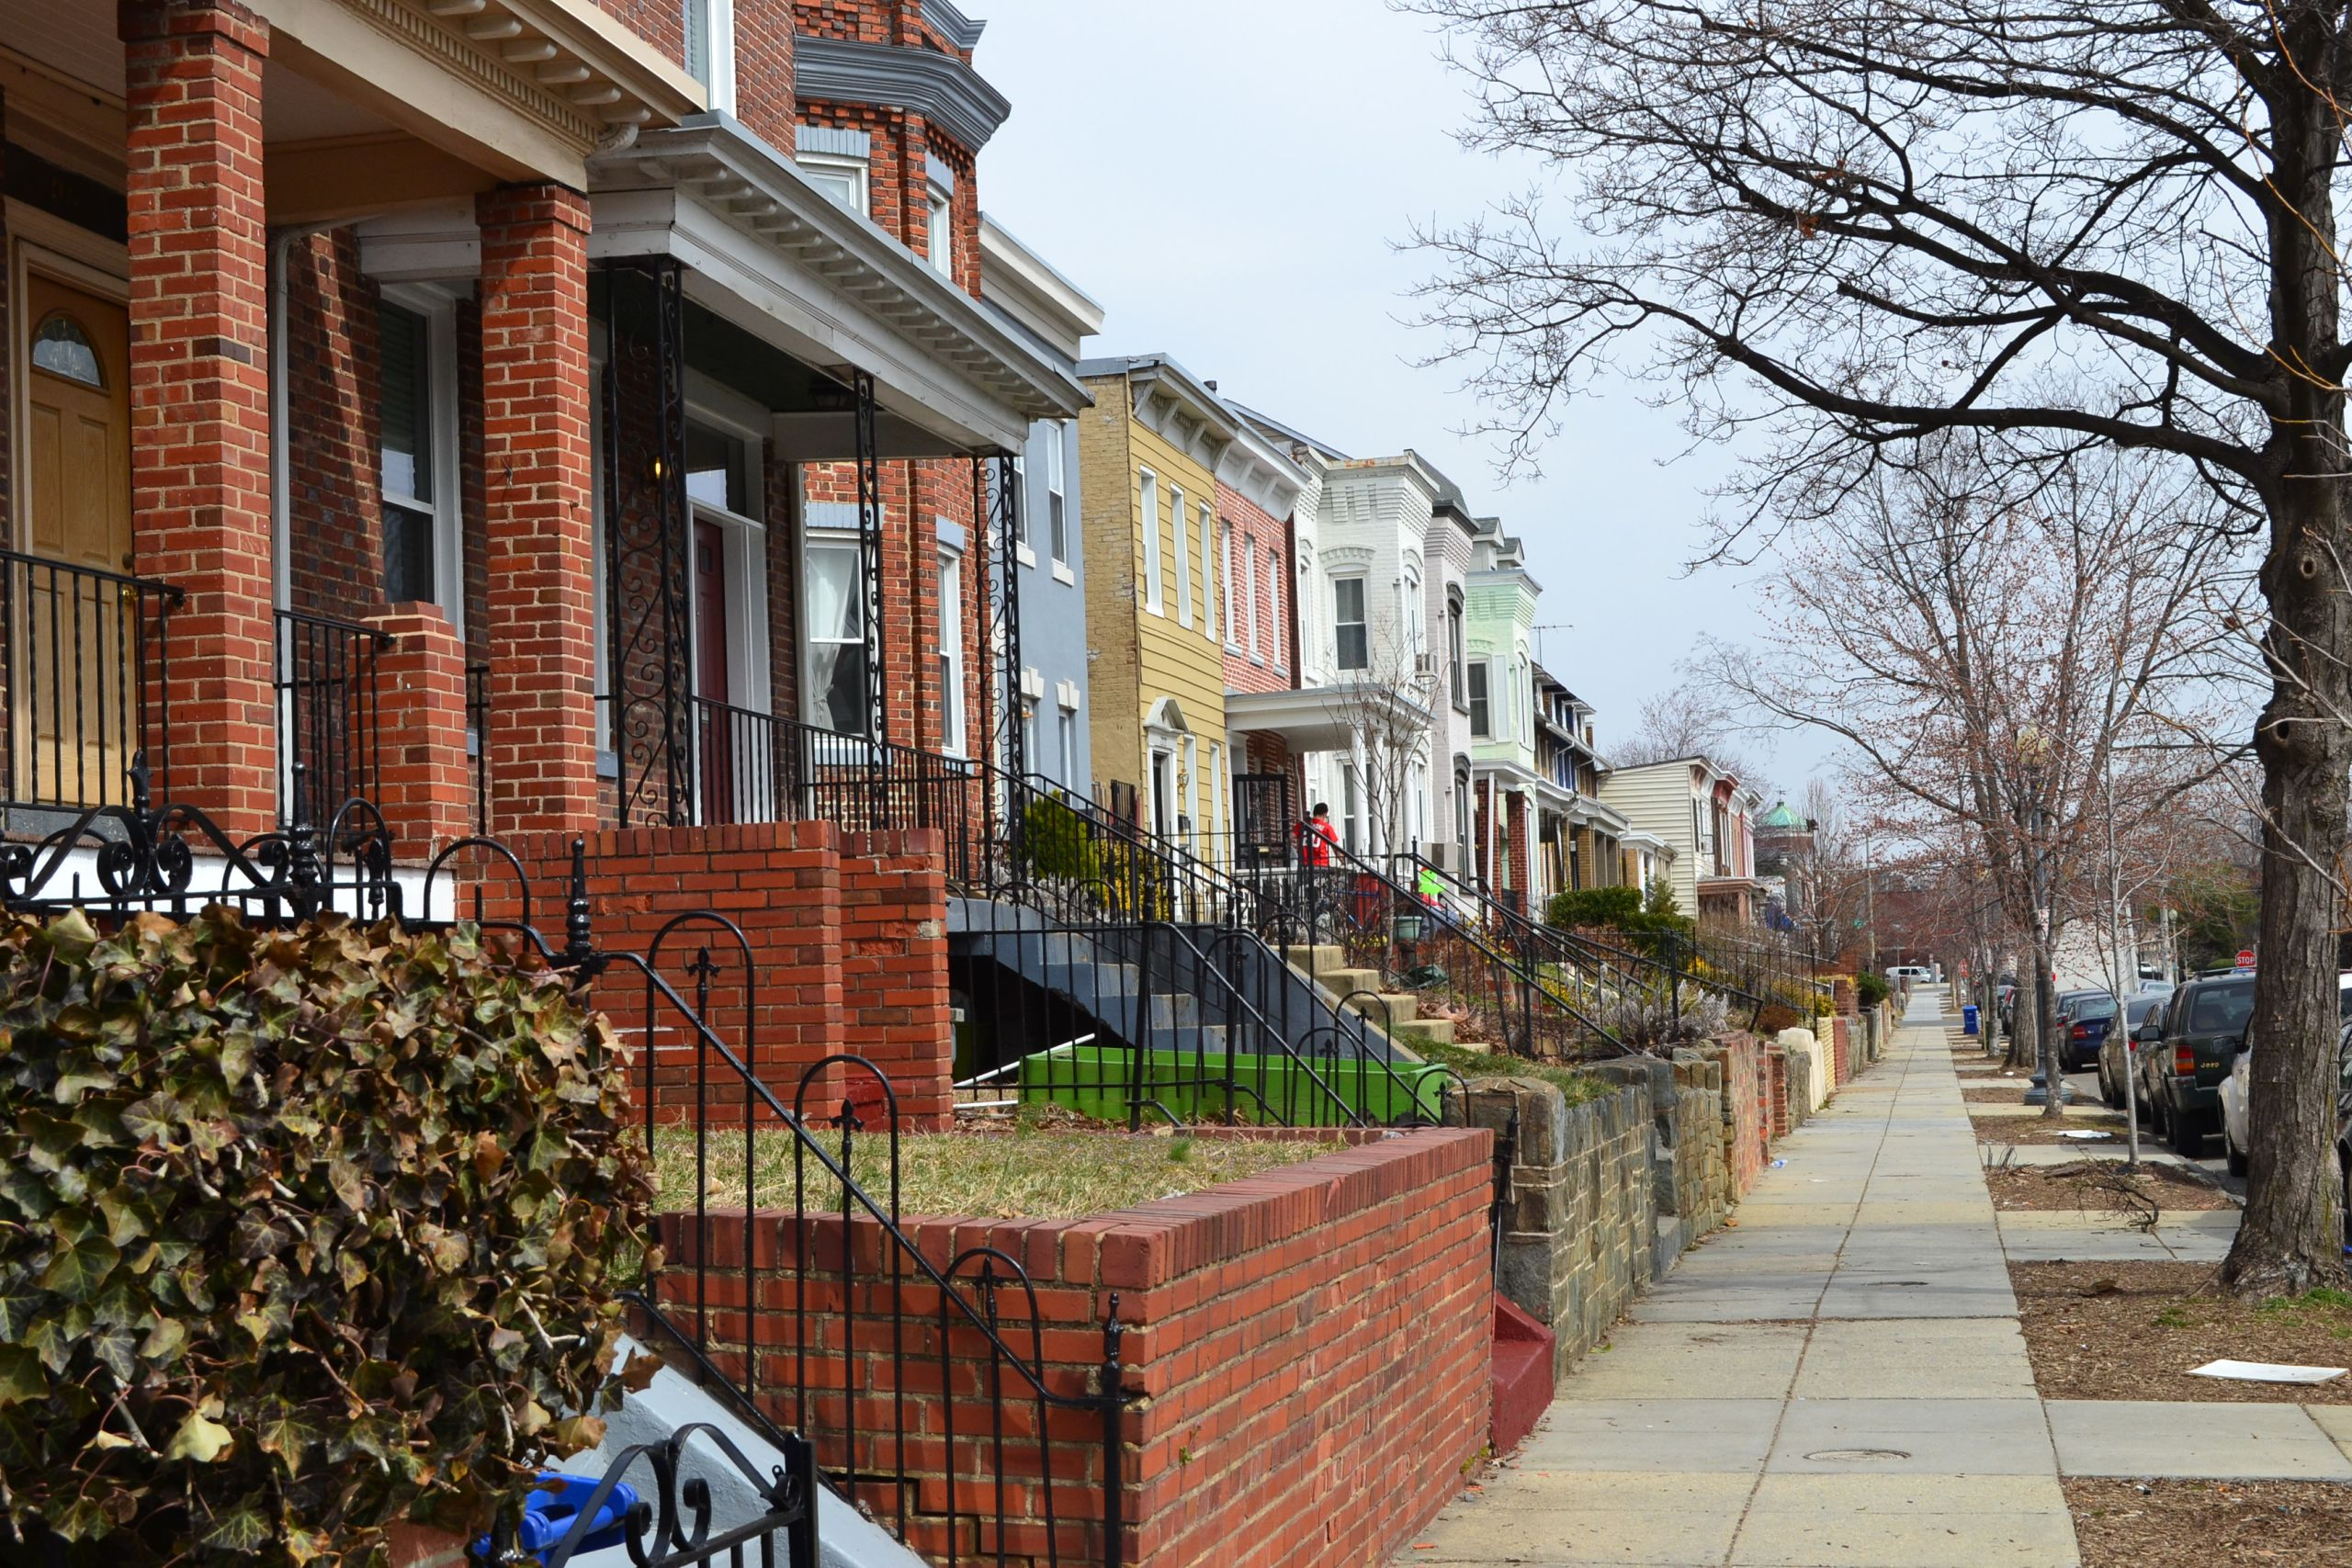 Set of rowhomes in the Trinidad neighborhood of Northeast DC